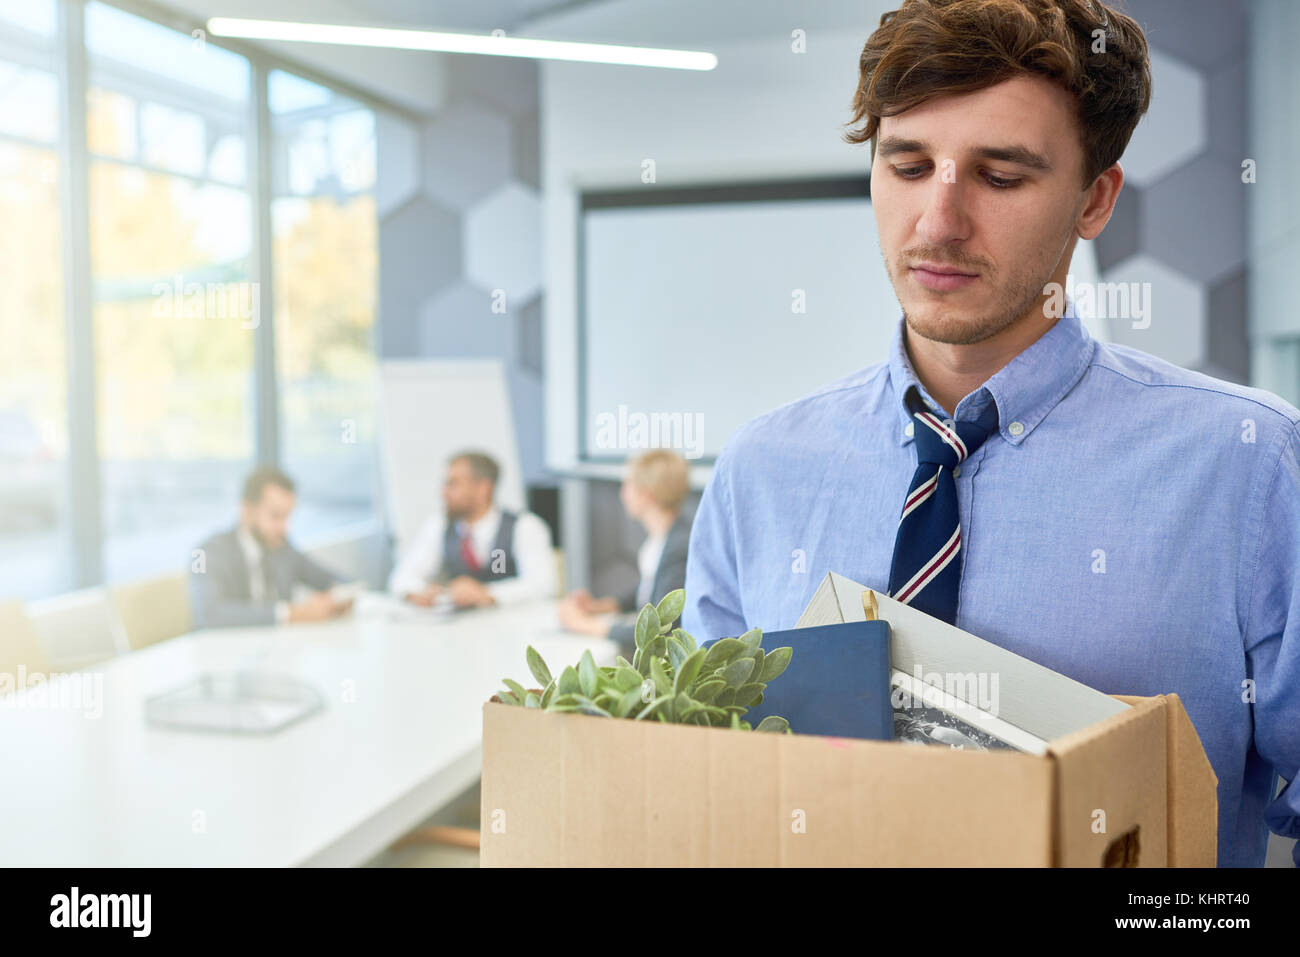 Portrait of sad young man holding box of personal belongings  fired from work in business company, copy space - Stock Image